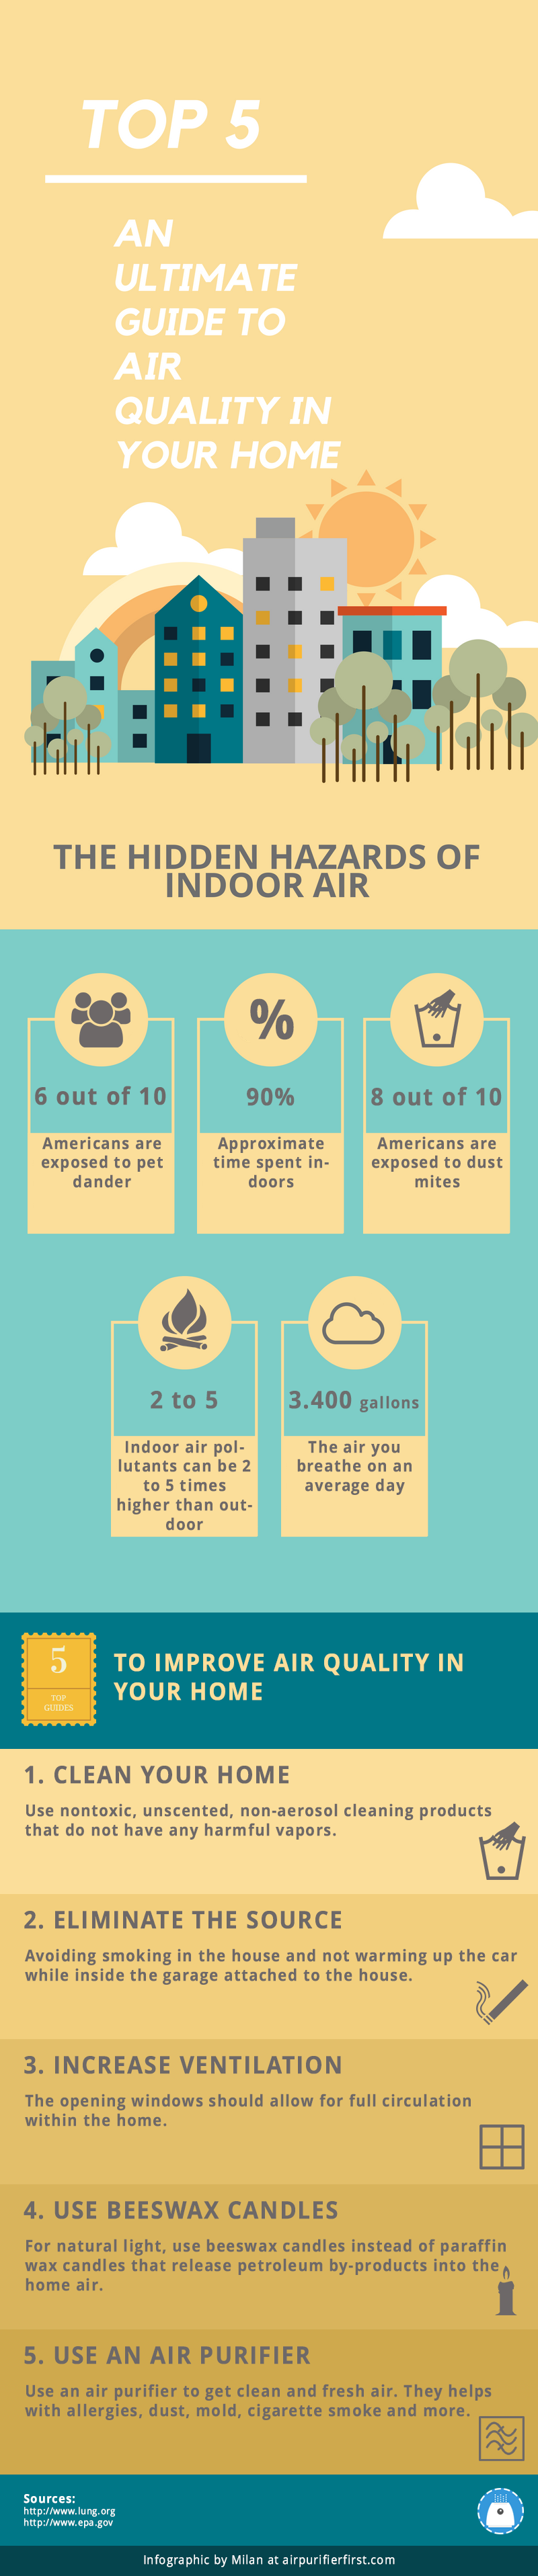 clean-air-guide-infographic-plaza